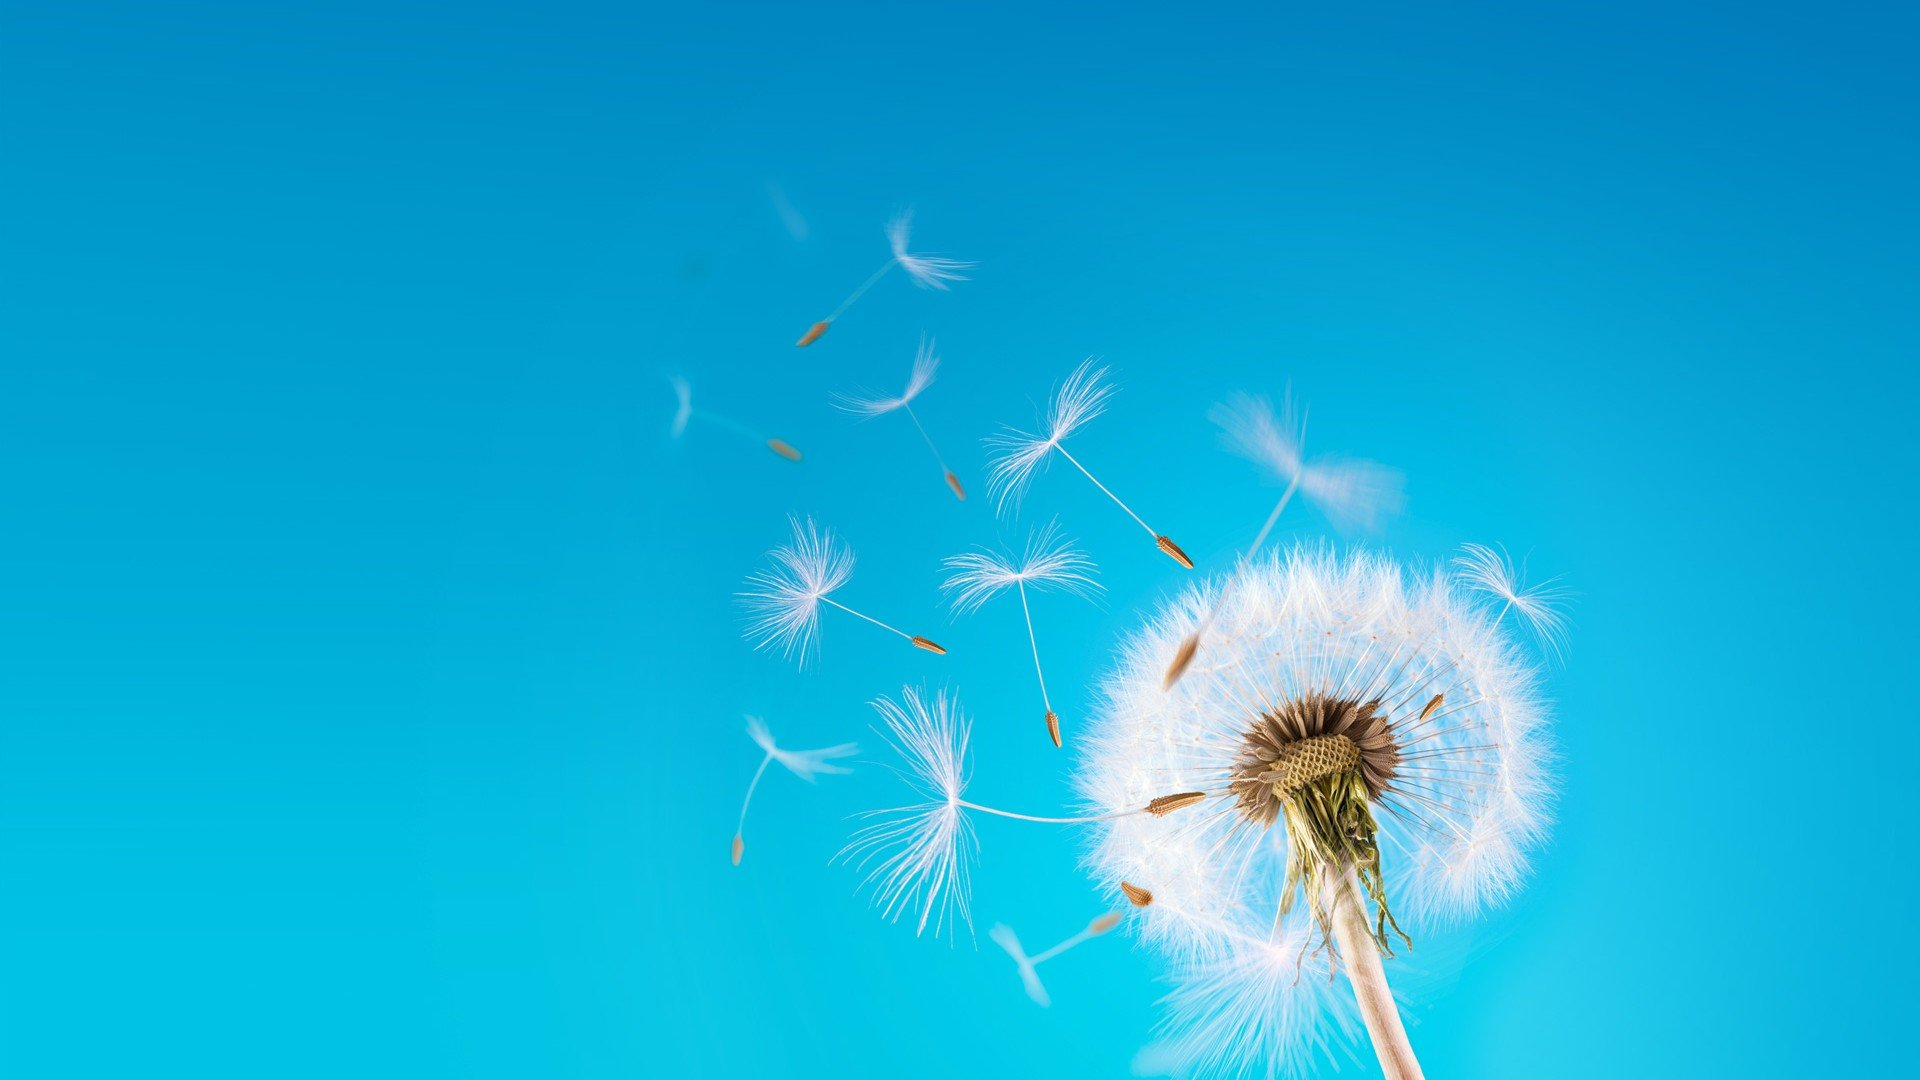 Download Dandelion Background 1920x1080